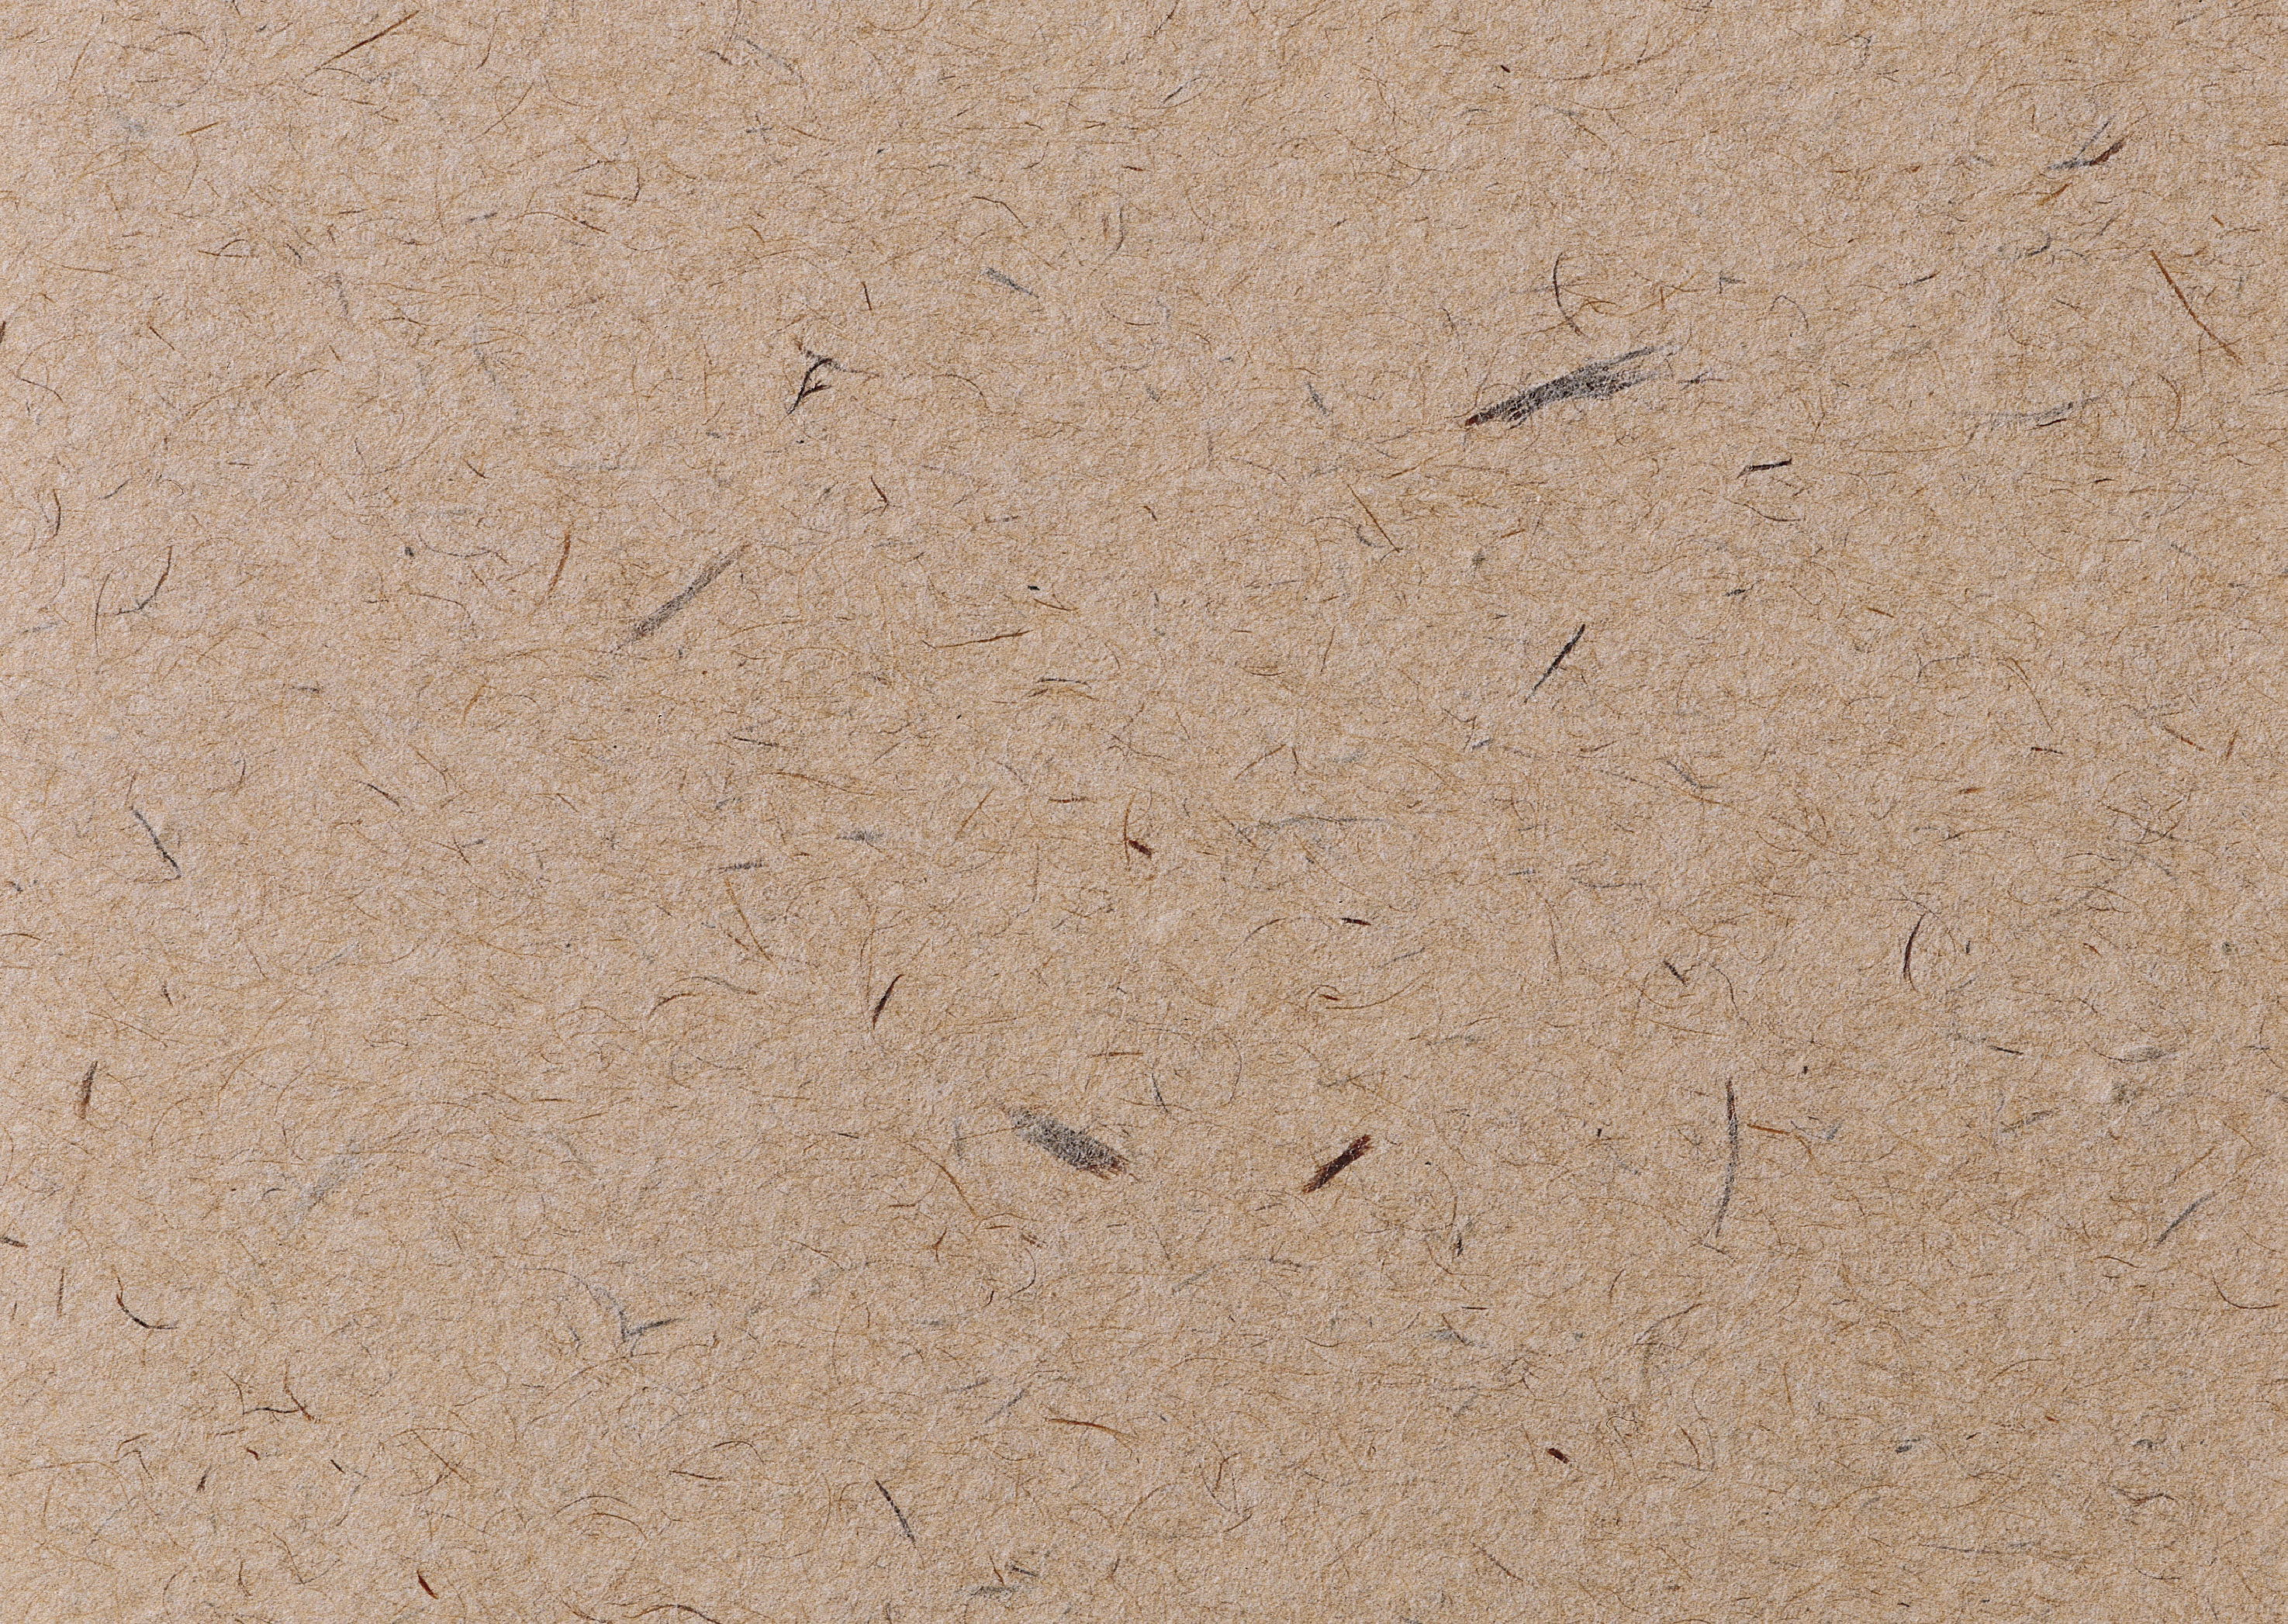 Vintage Black Wallpaper Free Stock Photo Of Recycled Paper Texture